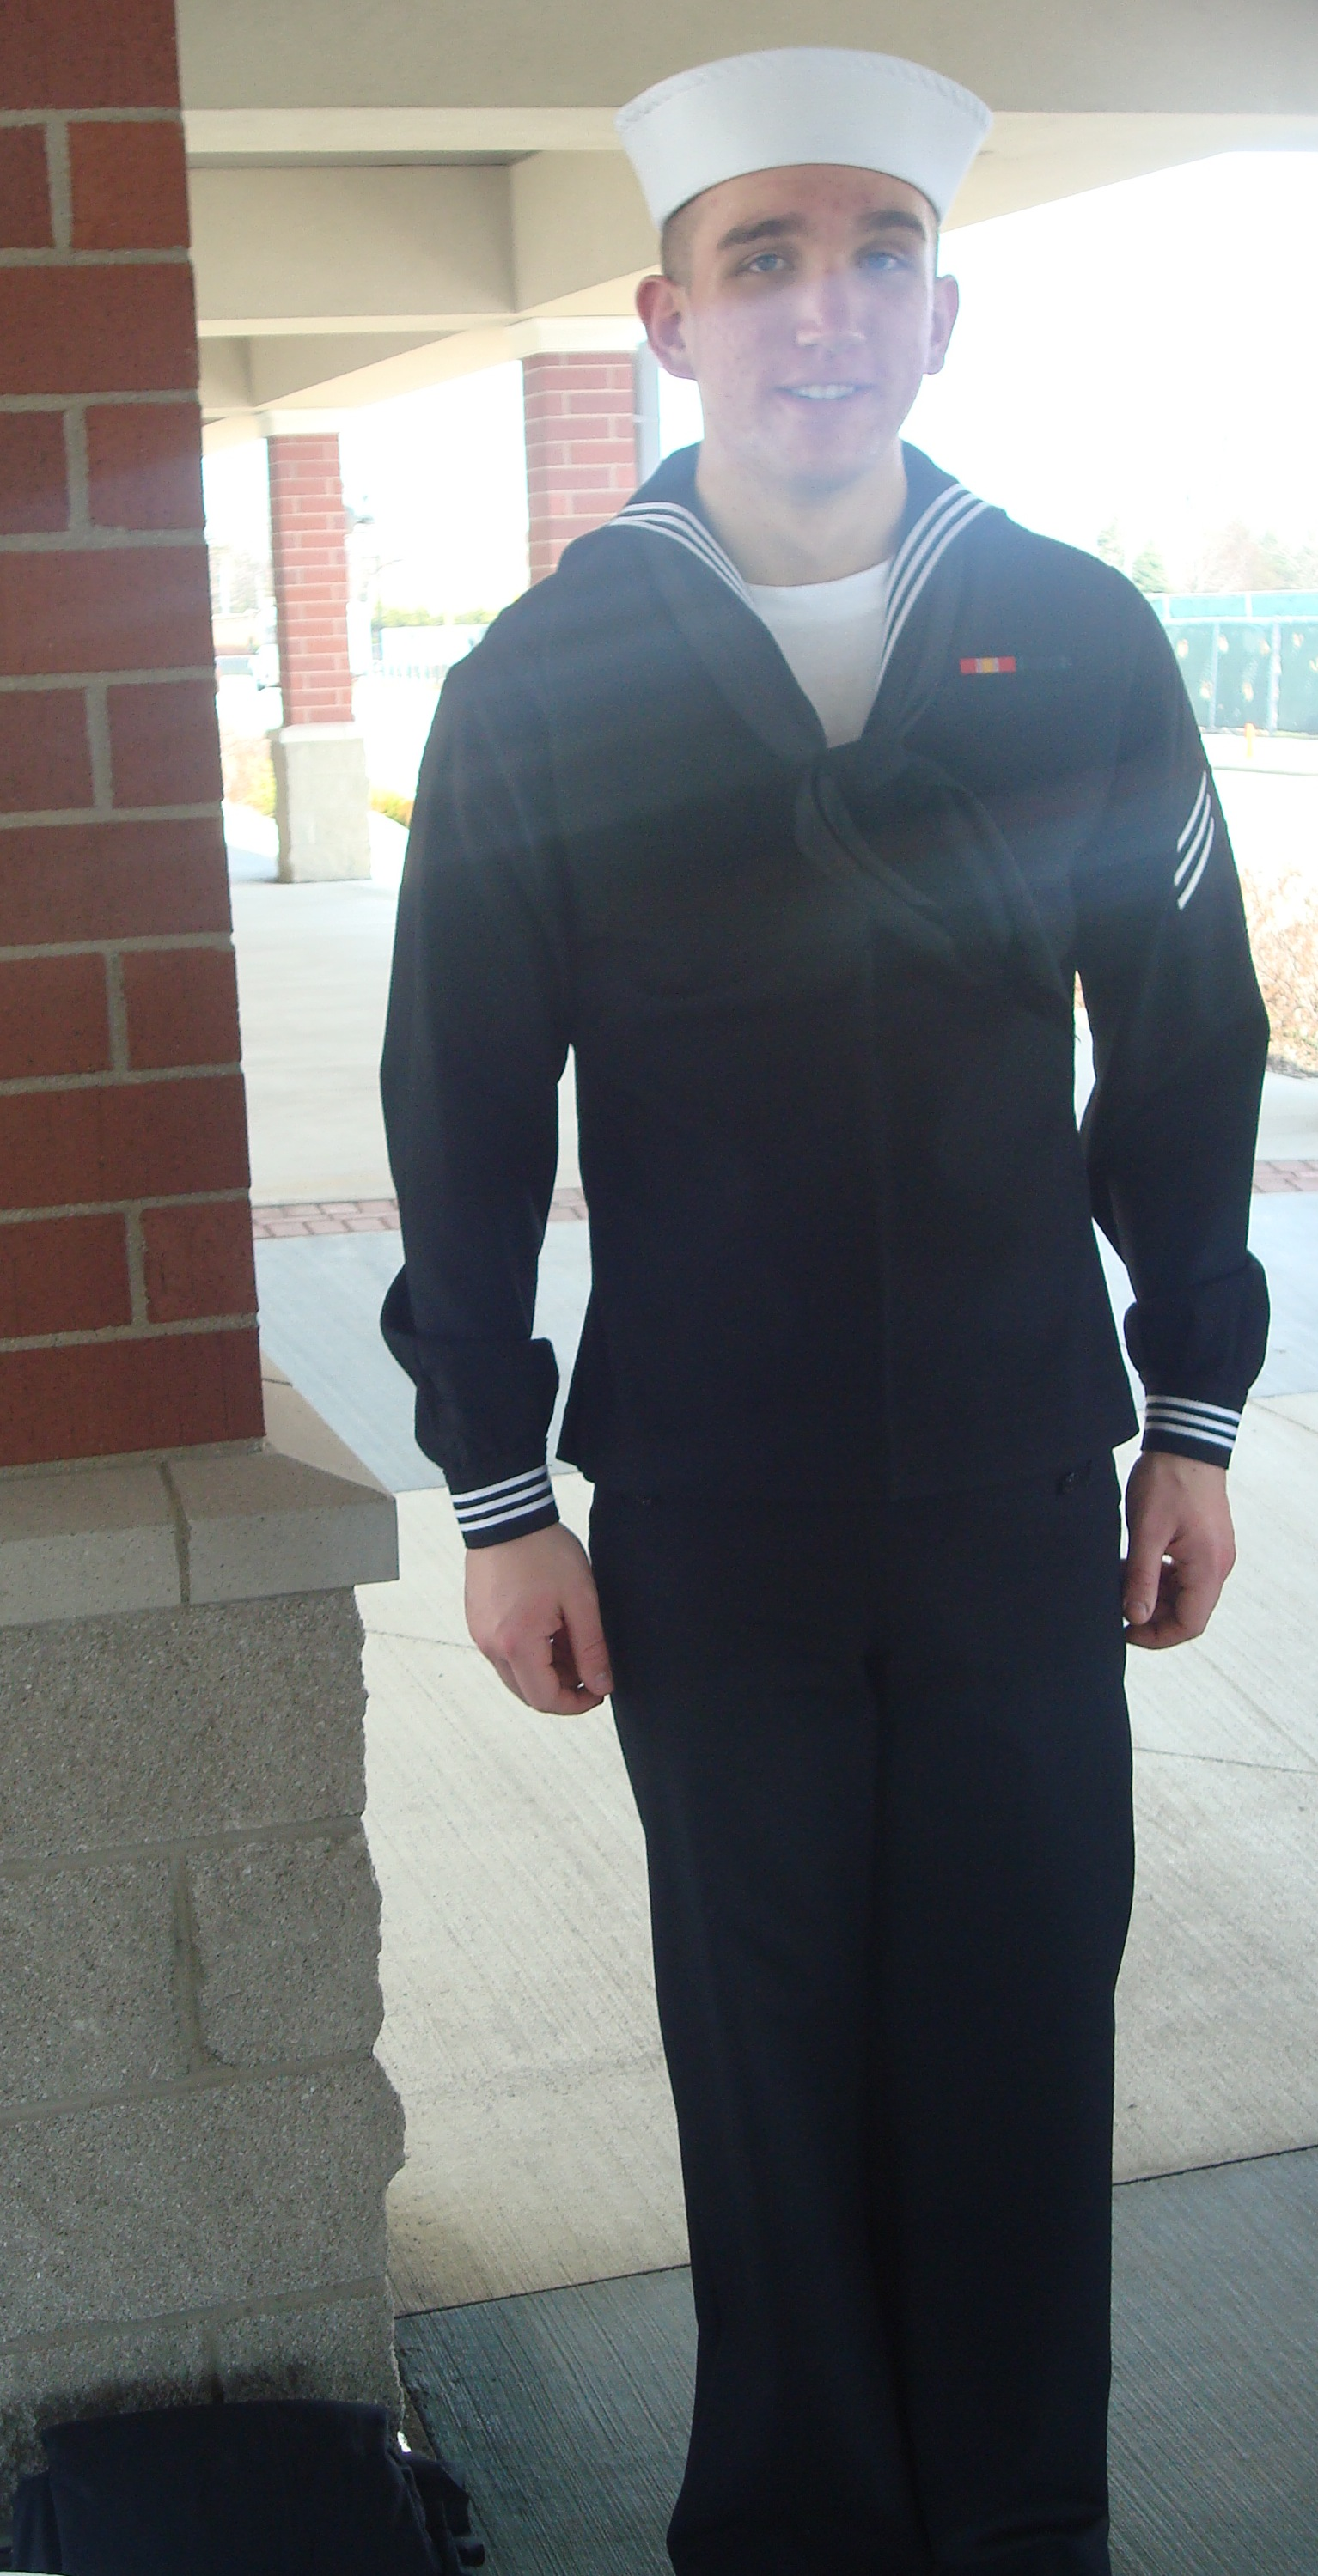 Thrifty We Went Back To Hotel To Wait N This One Was His Call To Come Pick Him Up Whichtook Too Bad When He Called He Had No Idea Where He If Navy Graduation Is Measured wedding dress Navy Dress Blues